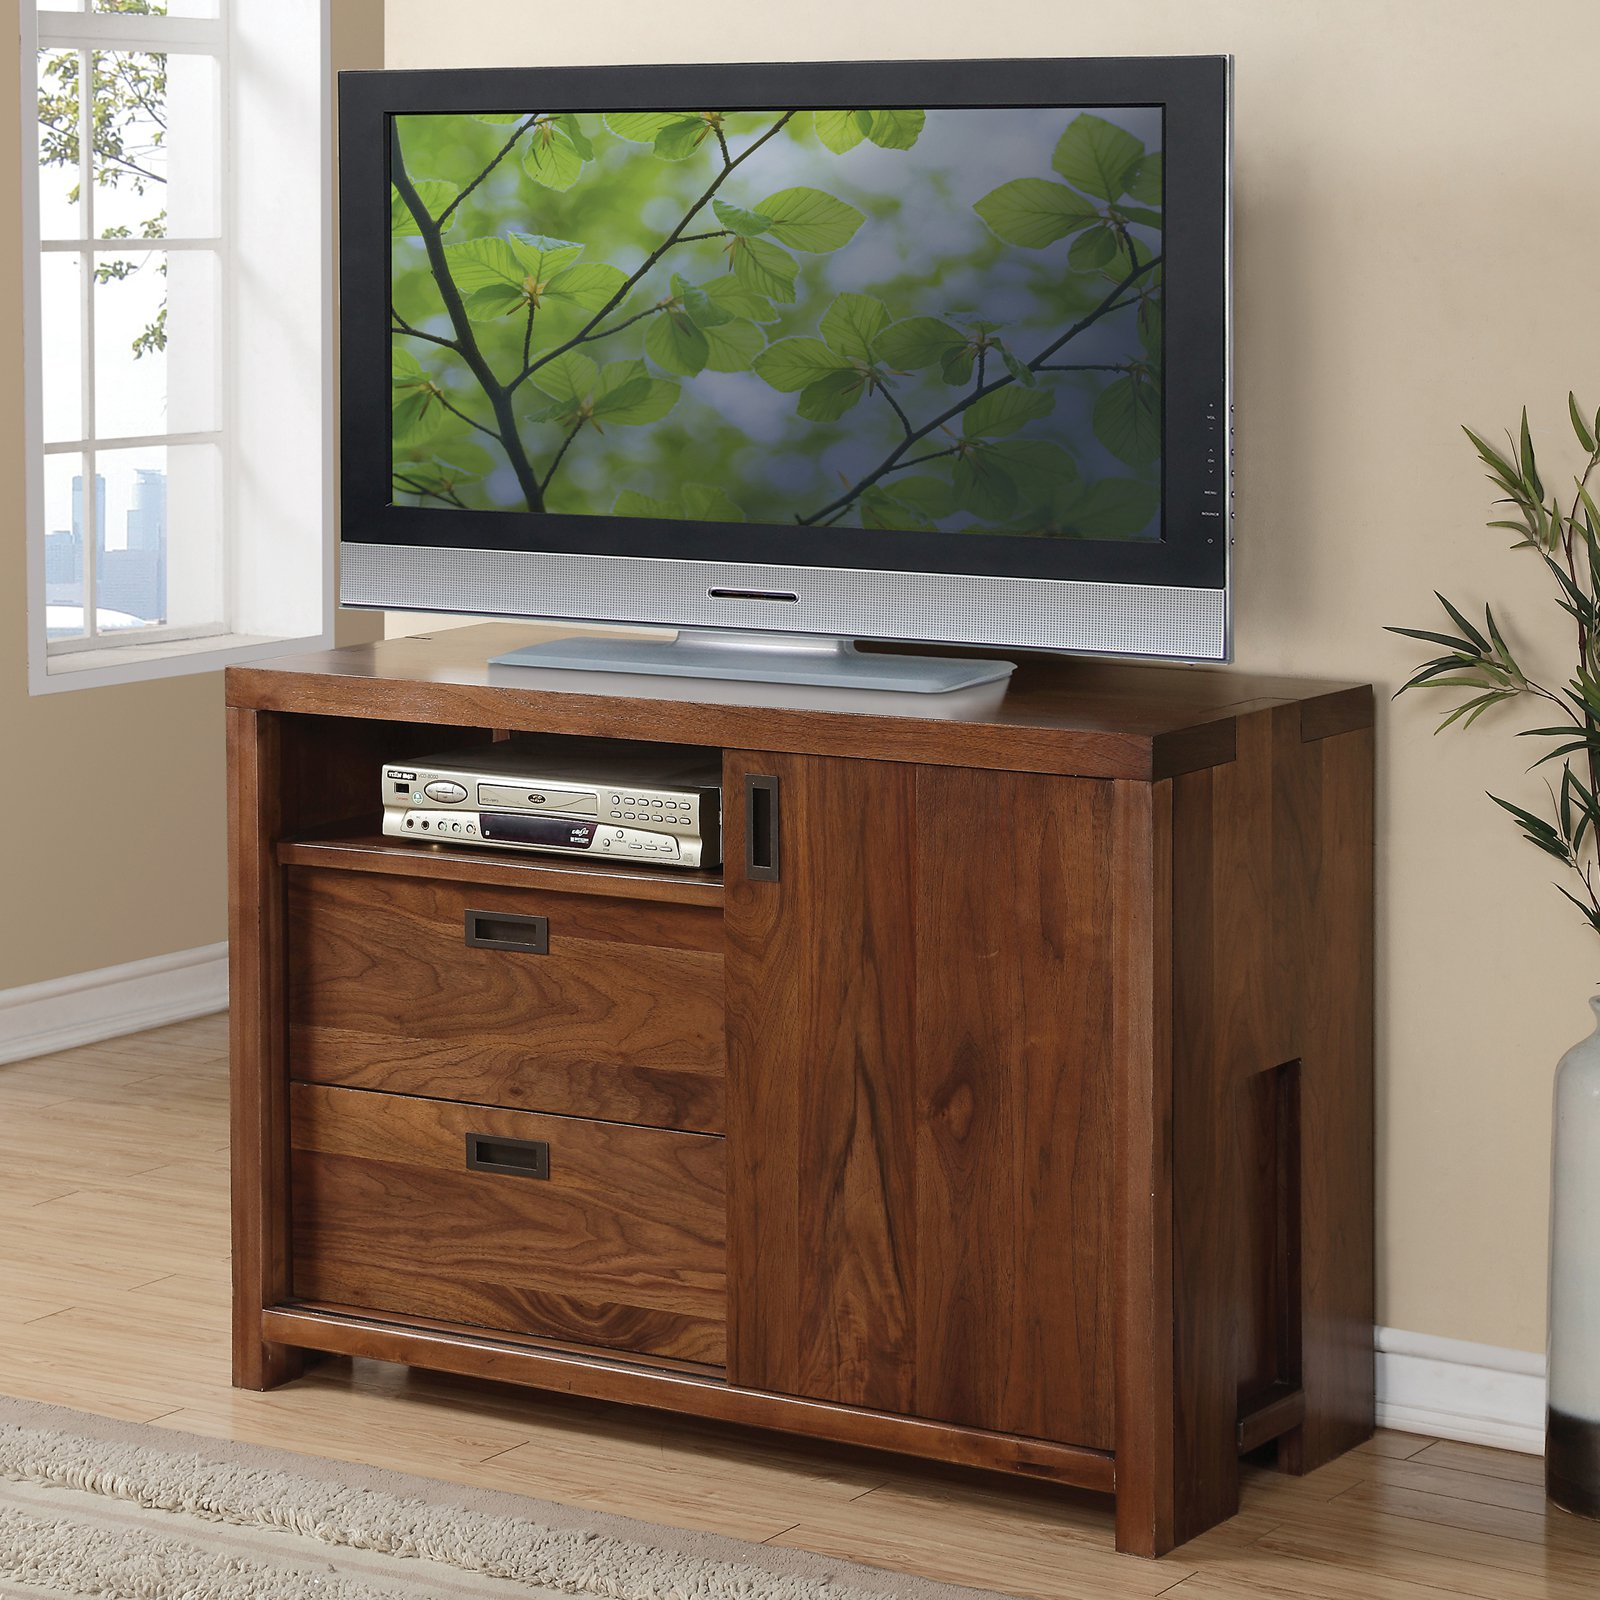 Riverside Terra Vista Media Chest